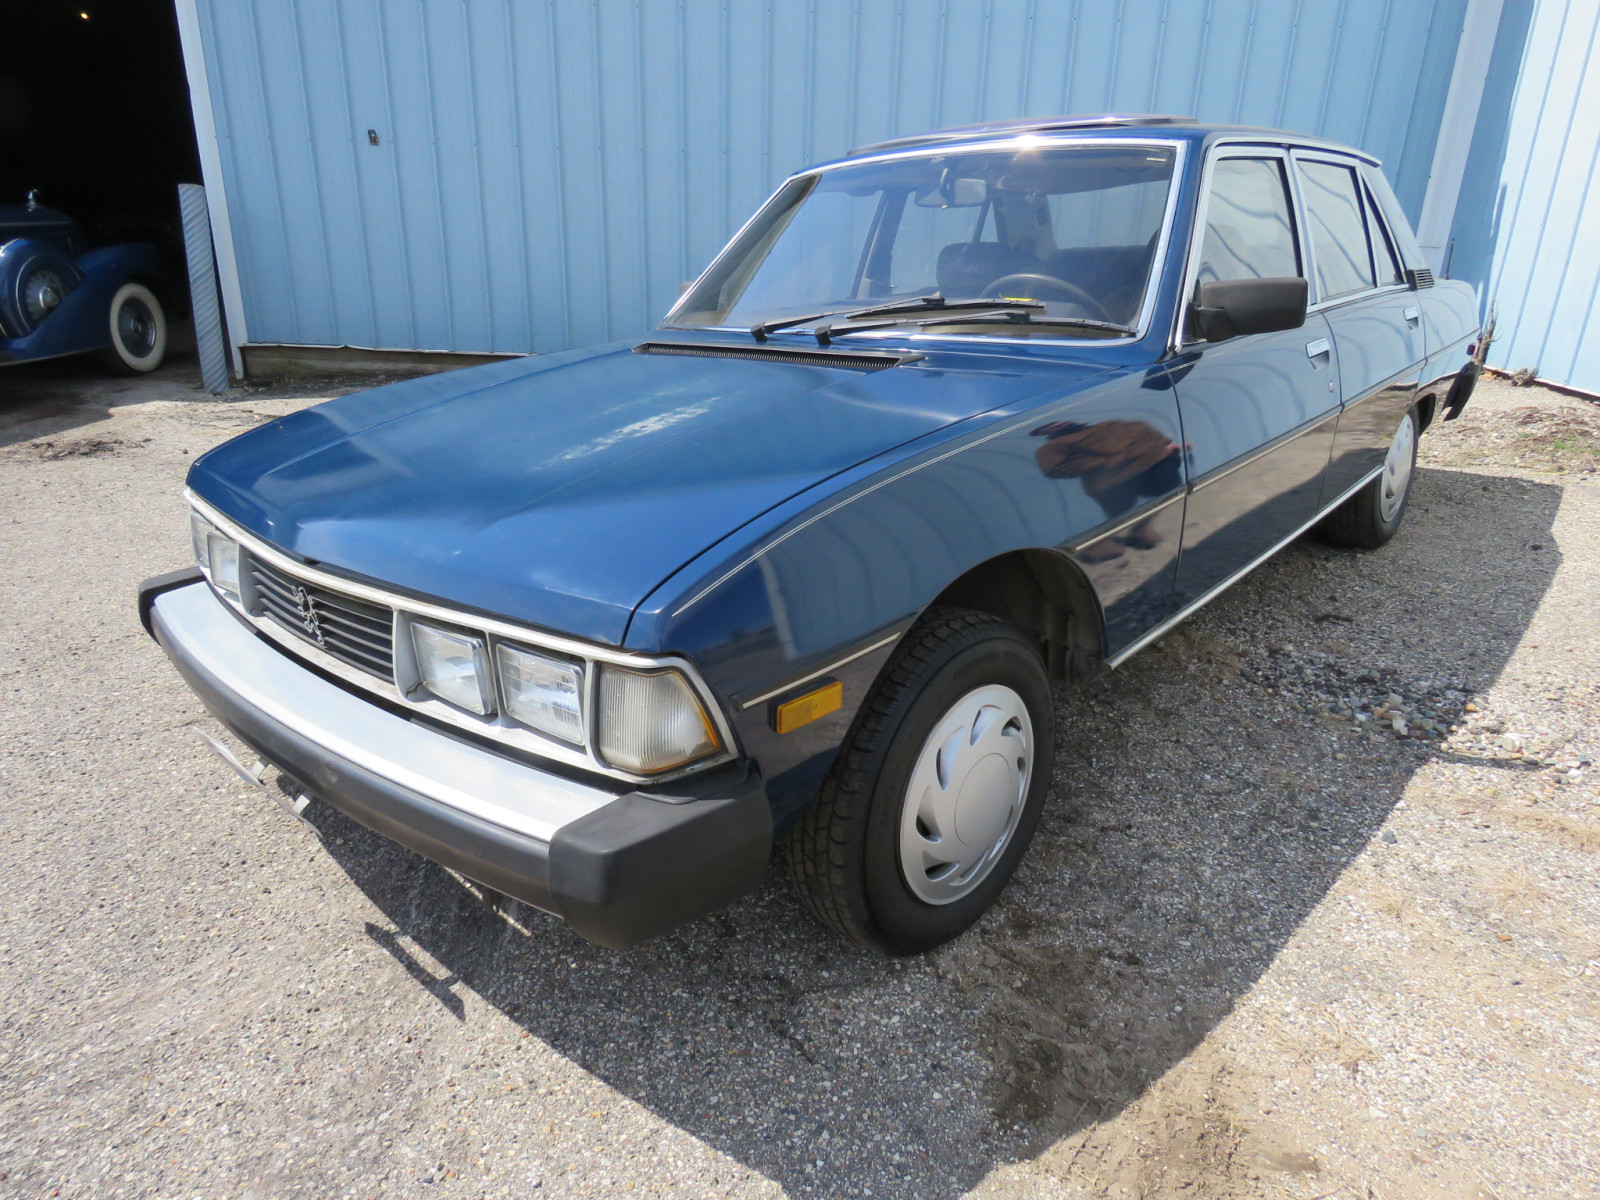 1982 Peugeot 604 Turbo Diesel 4dr Sedan - Image 2